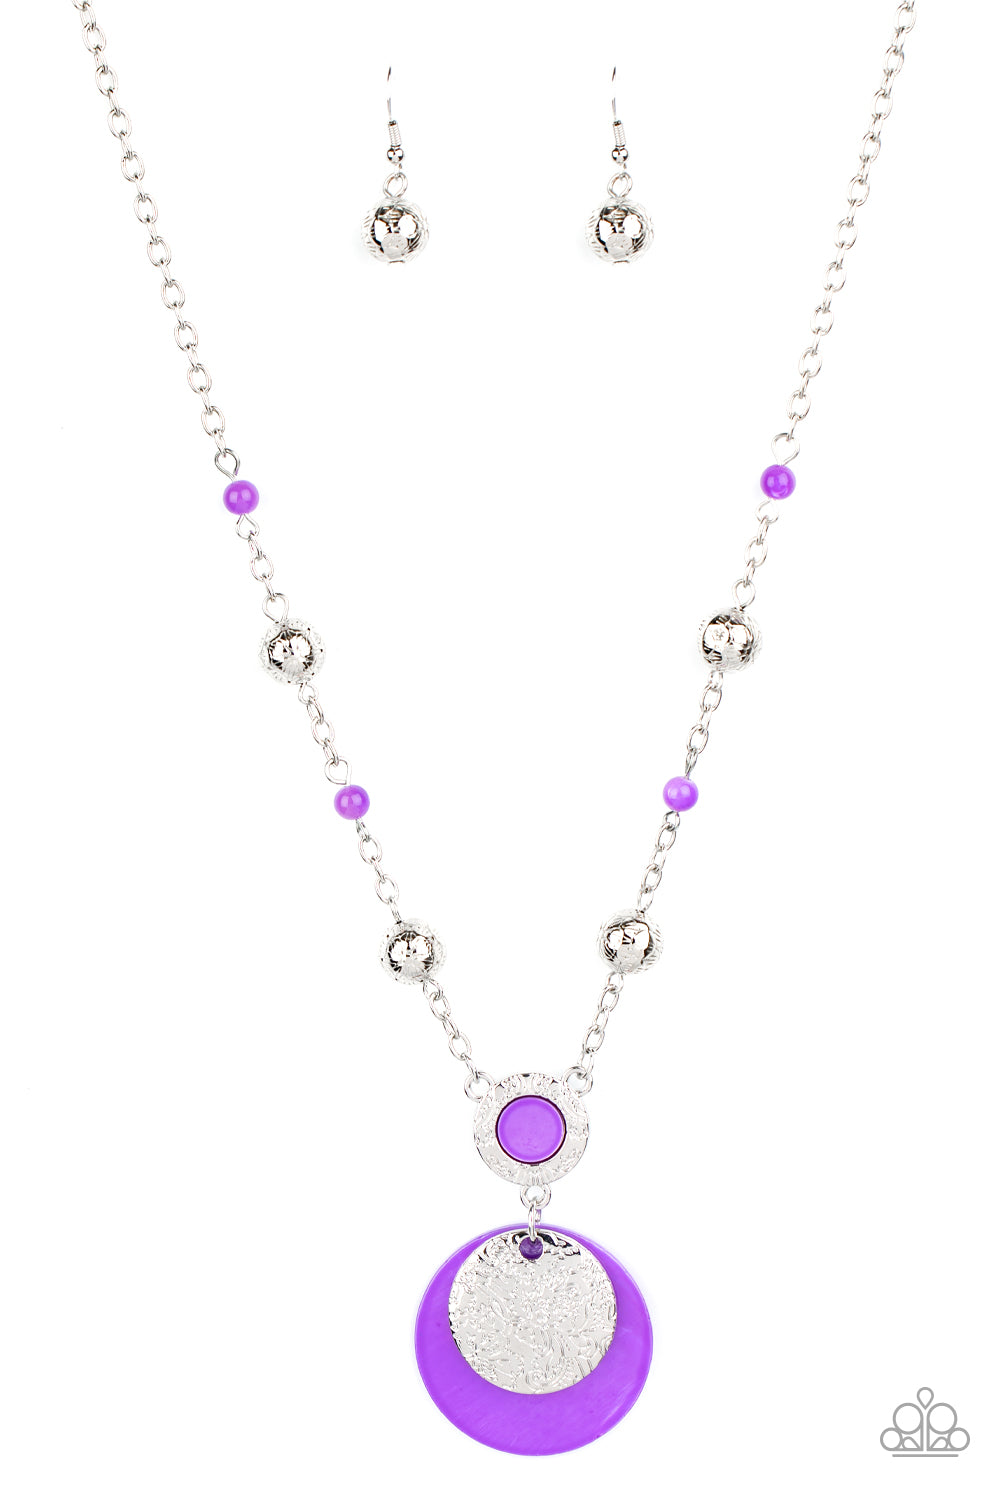 five-dollar-jewelry-sea-the-sights-purple-necklace-paparazzi-accessories